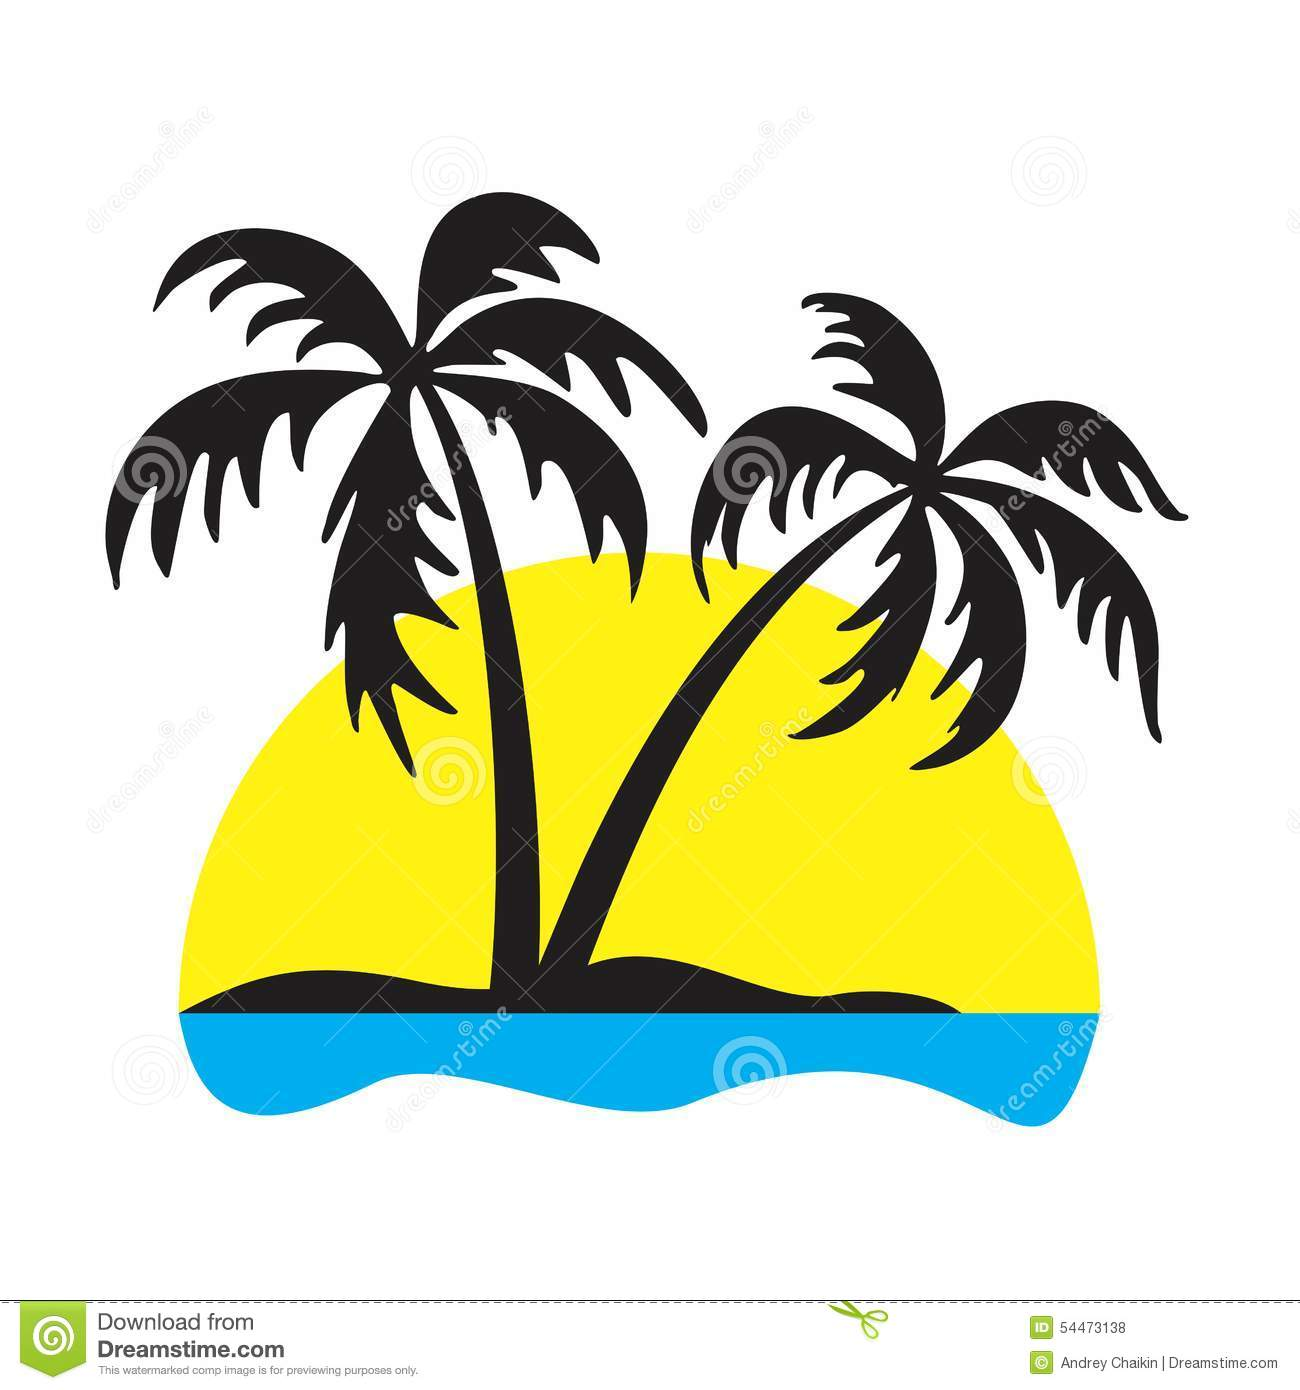 logo of the tropical island with palm trees and the seashore.